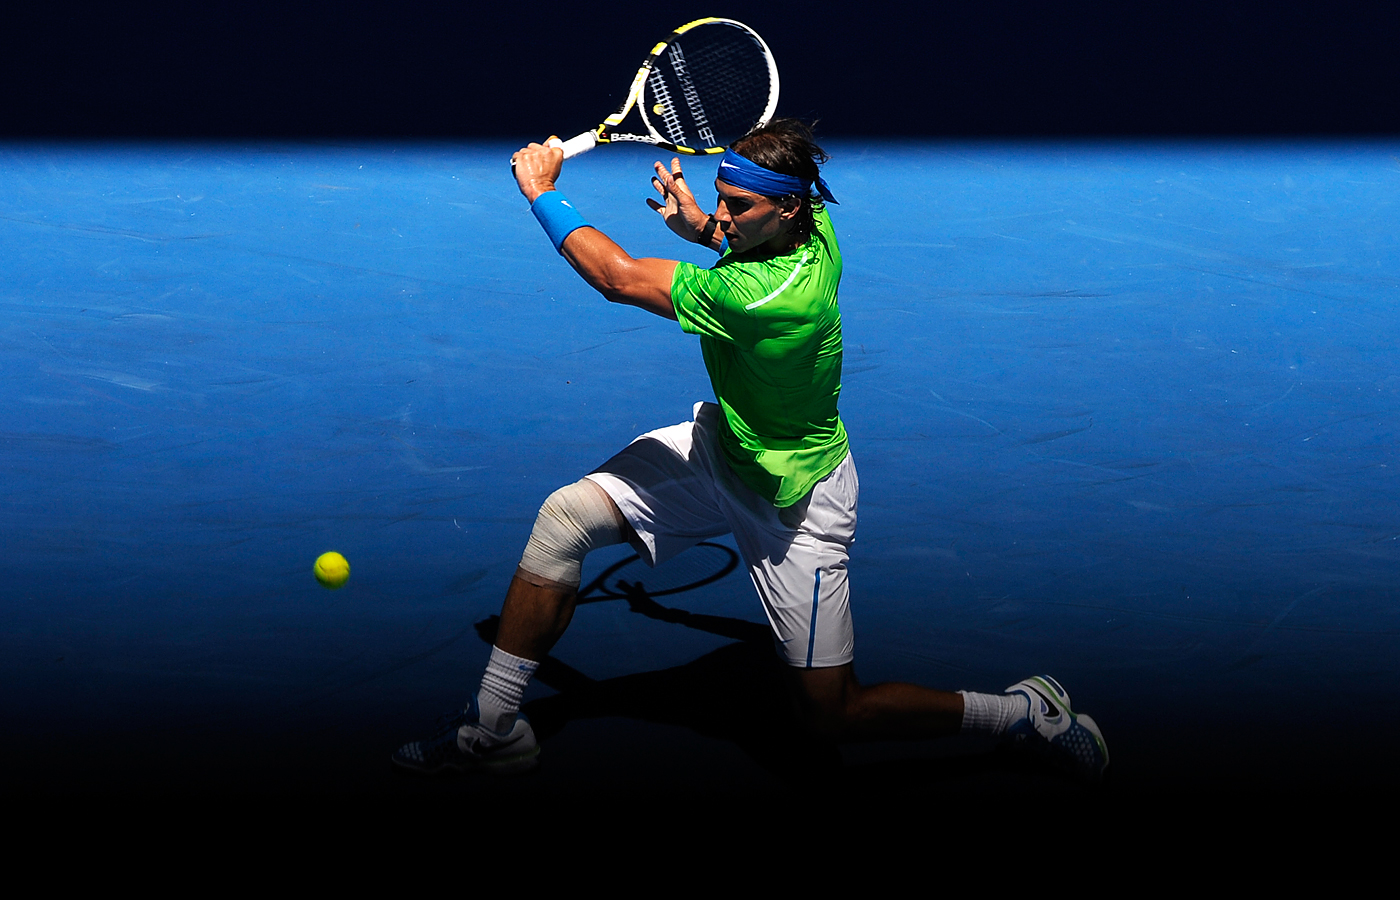 Widescreen Wallpapers: Tennis, (1400x900, V.92) - BsnSCB Graphics